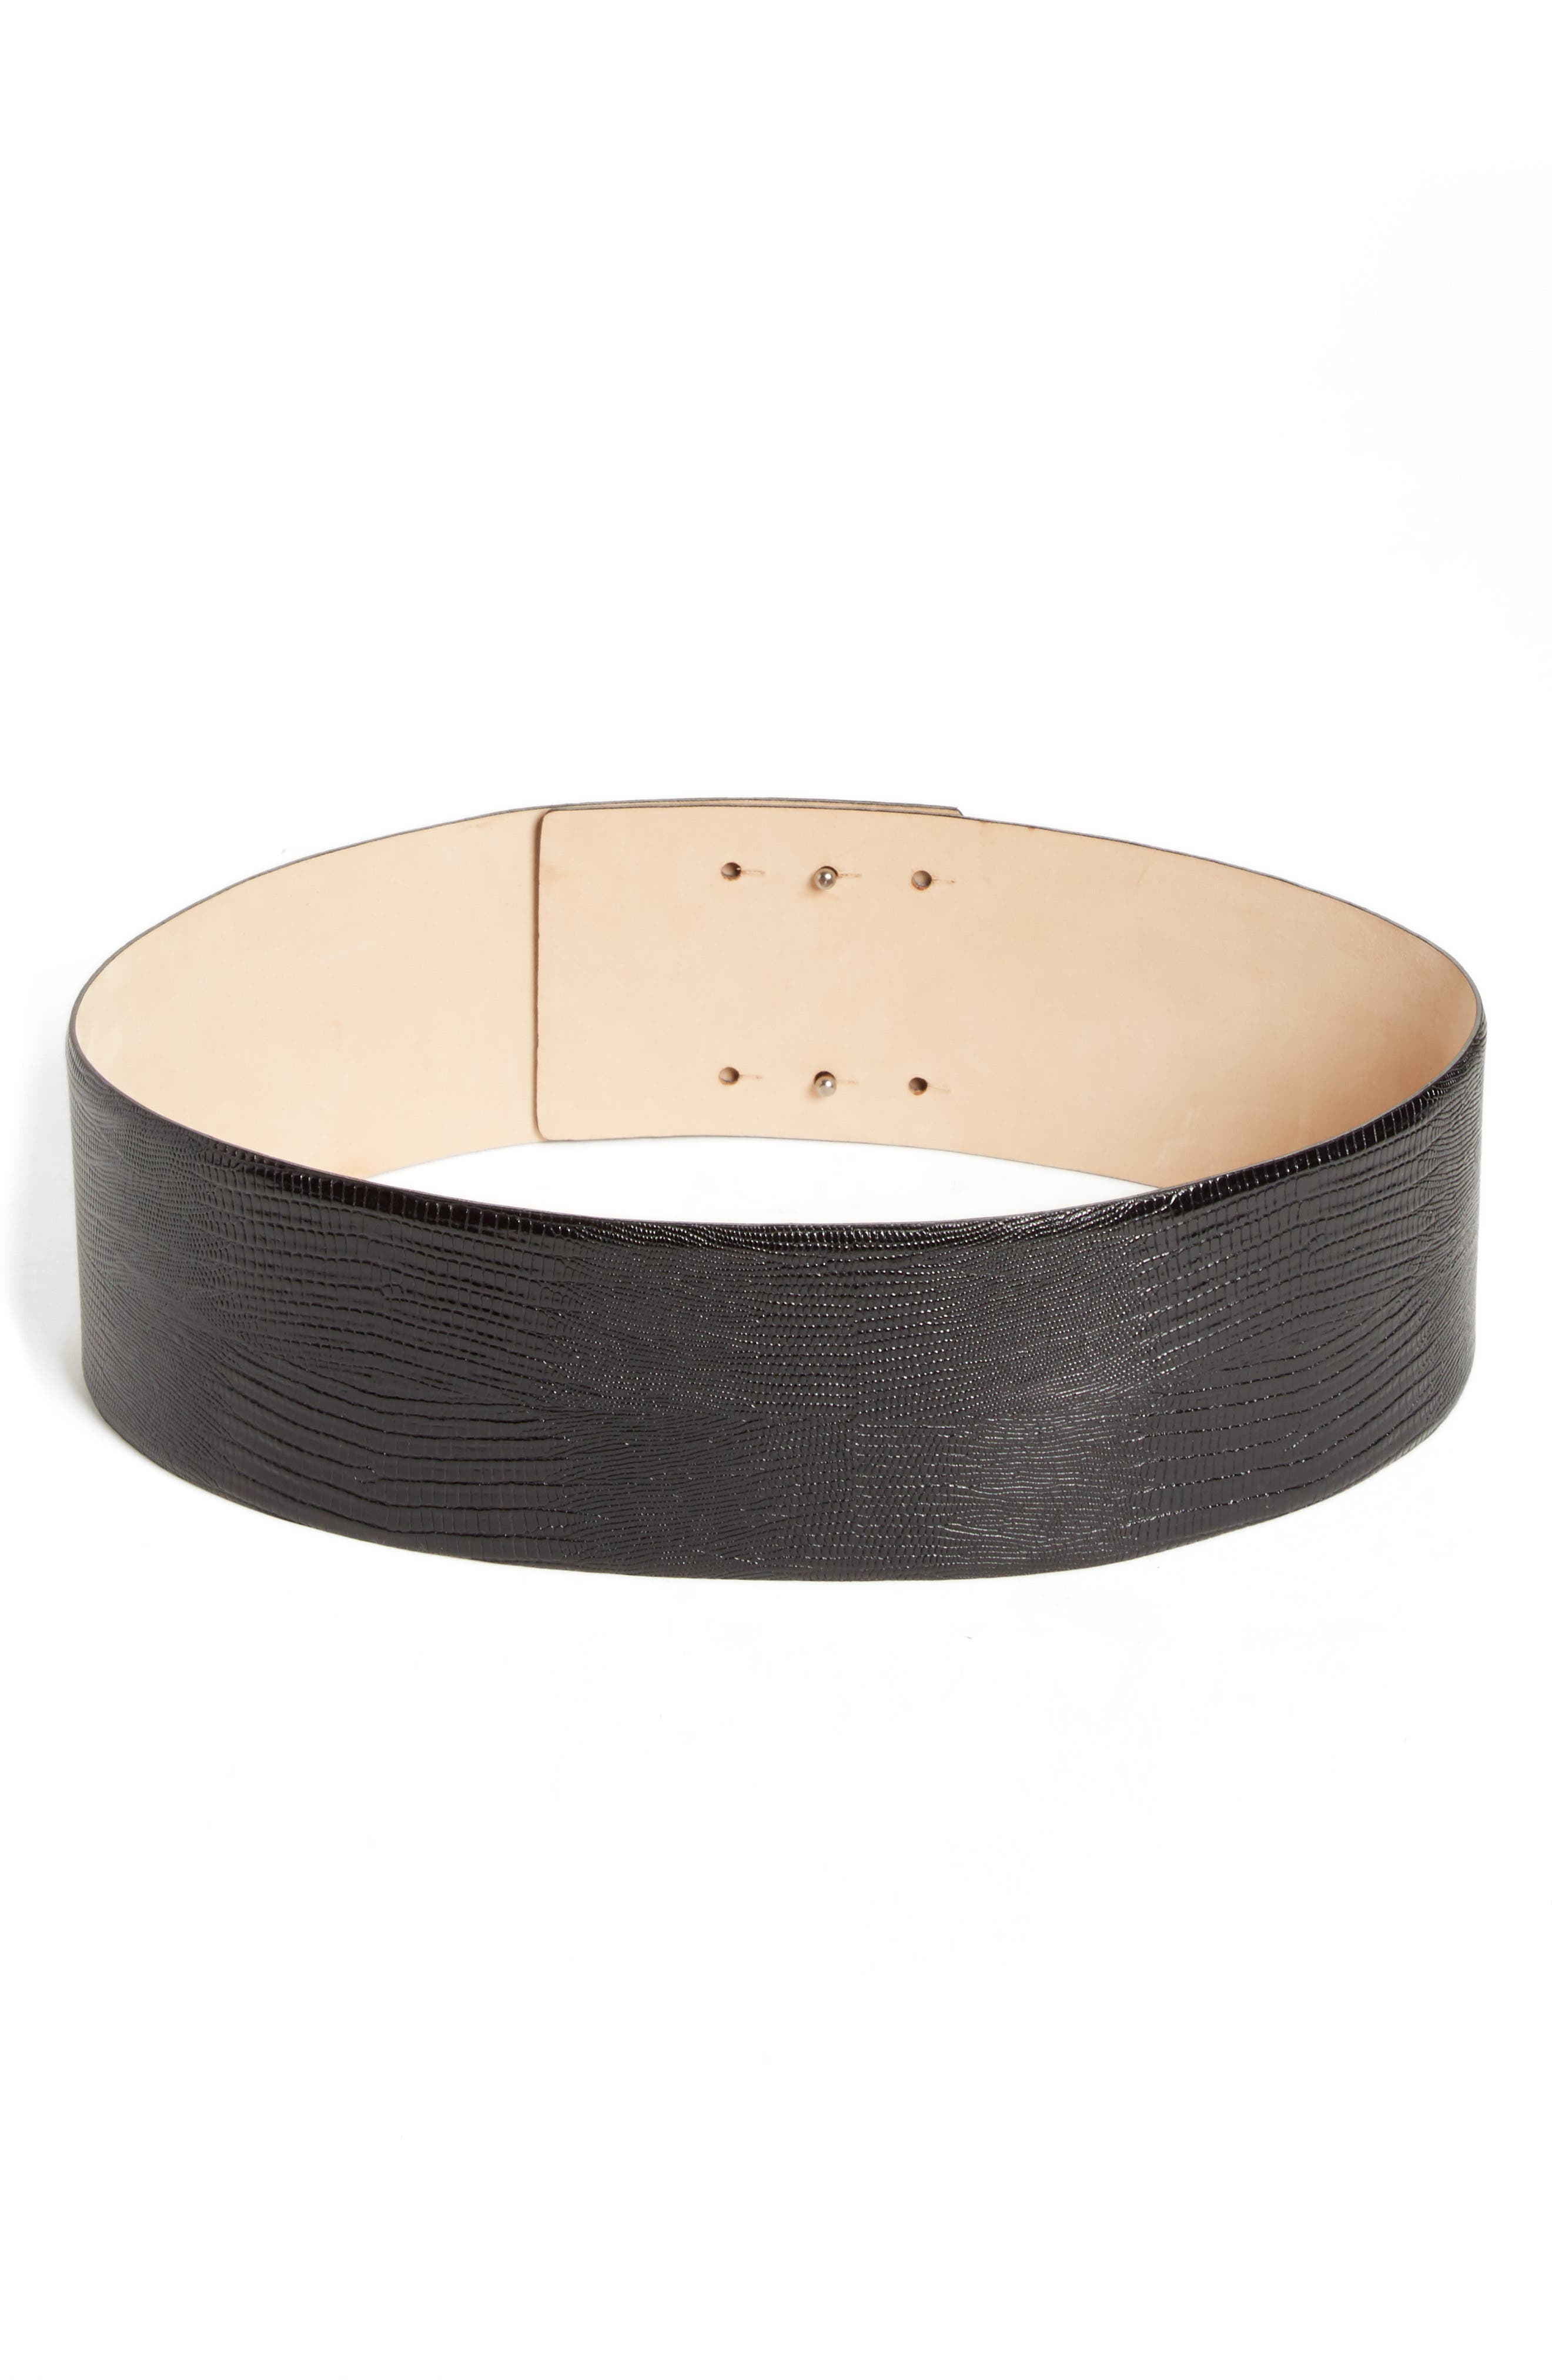 Reptile Embossed Leather Belt,                         Main,                         color, 001